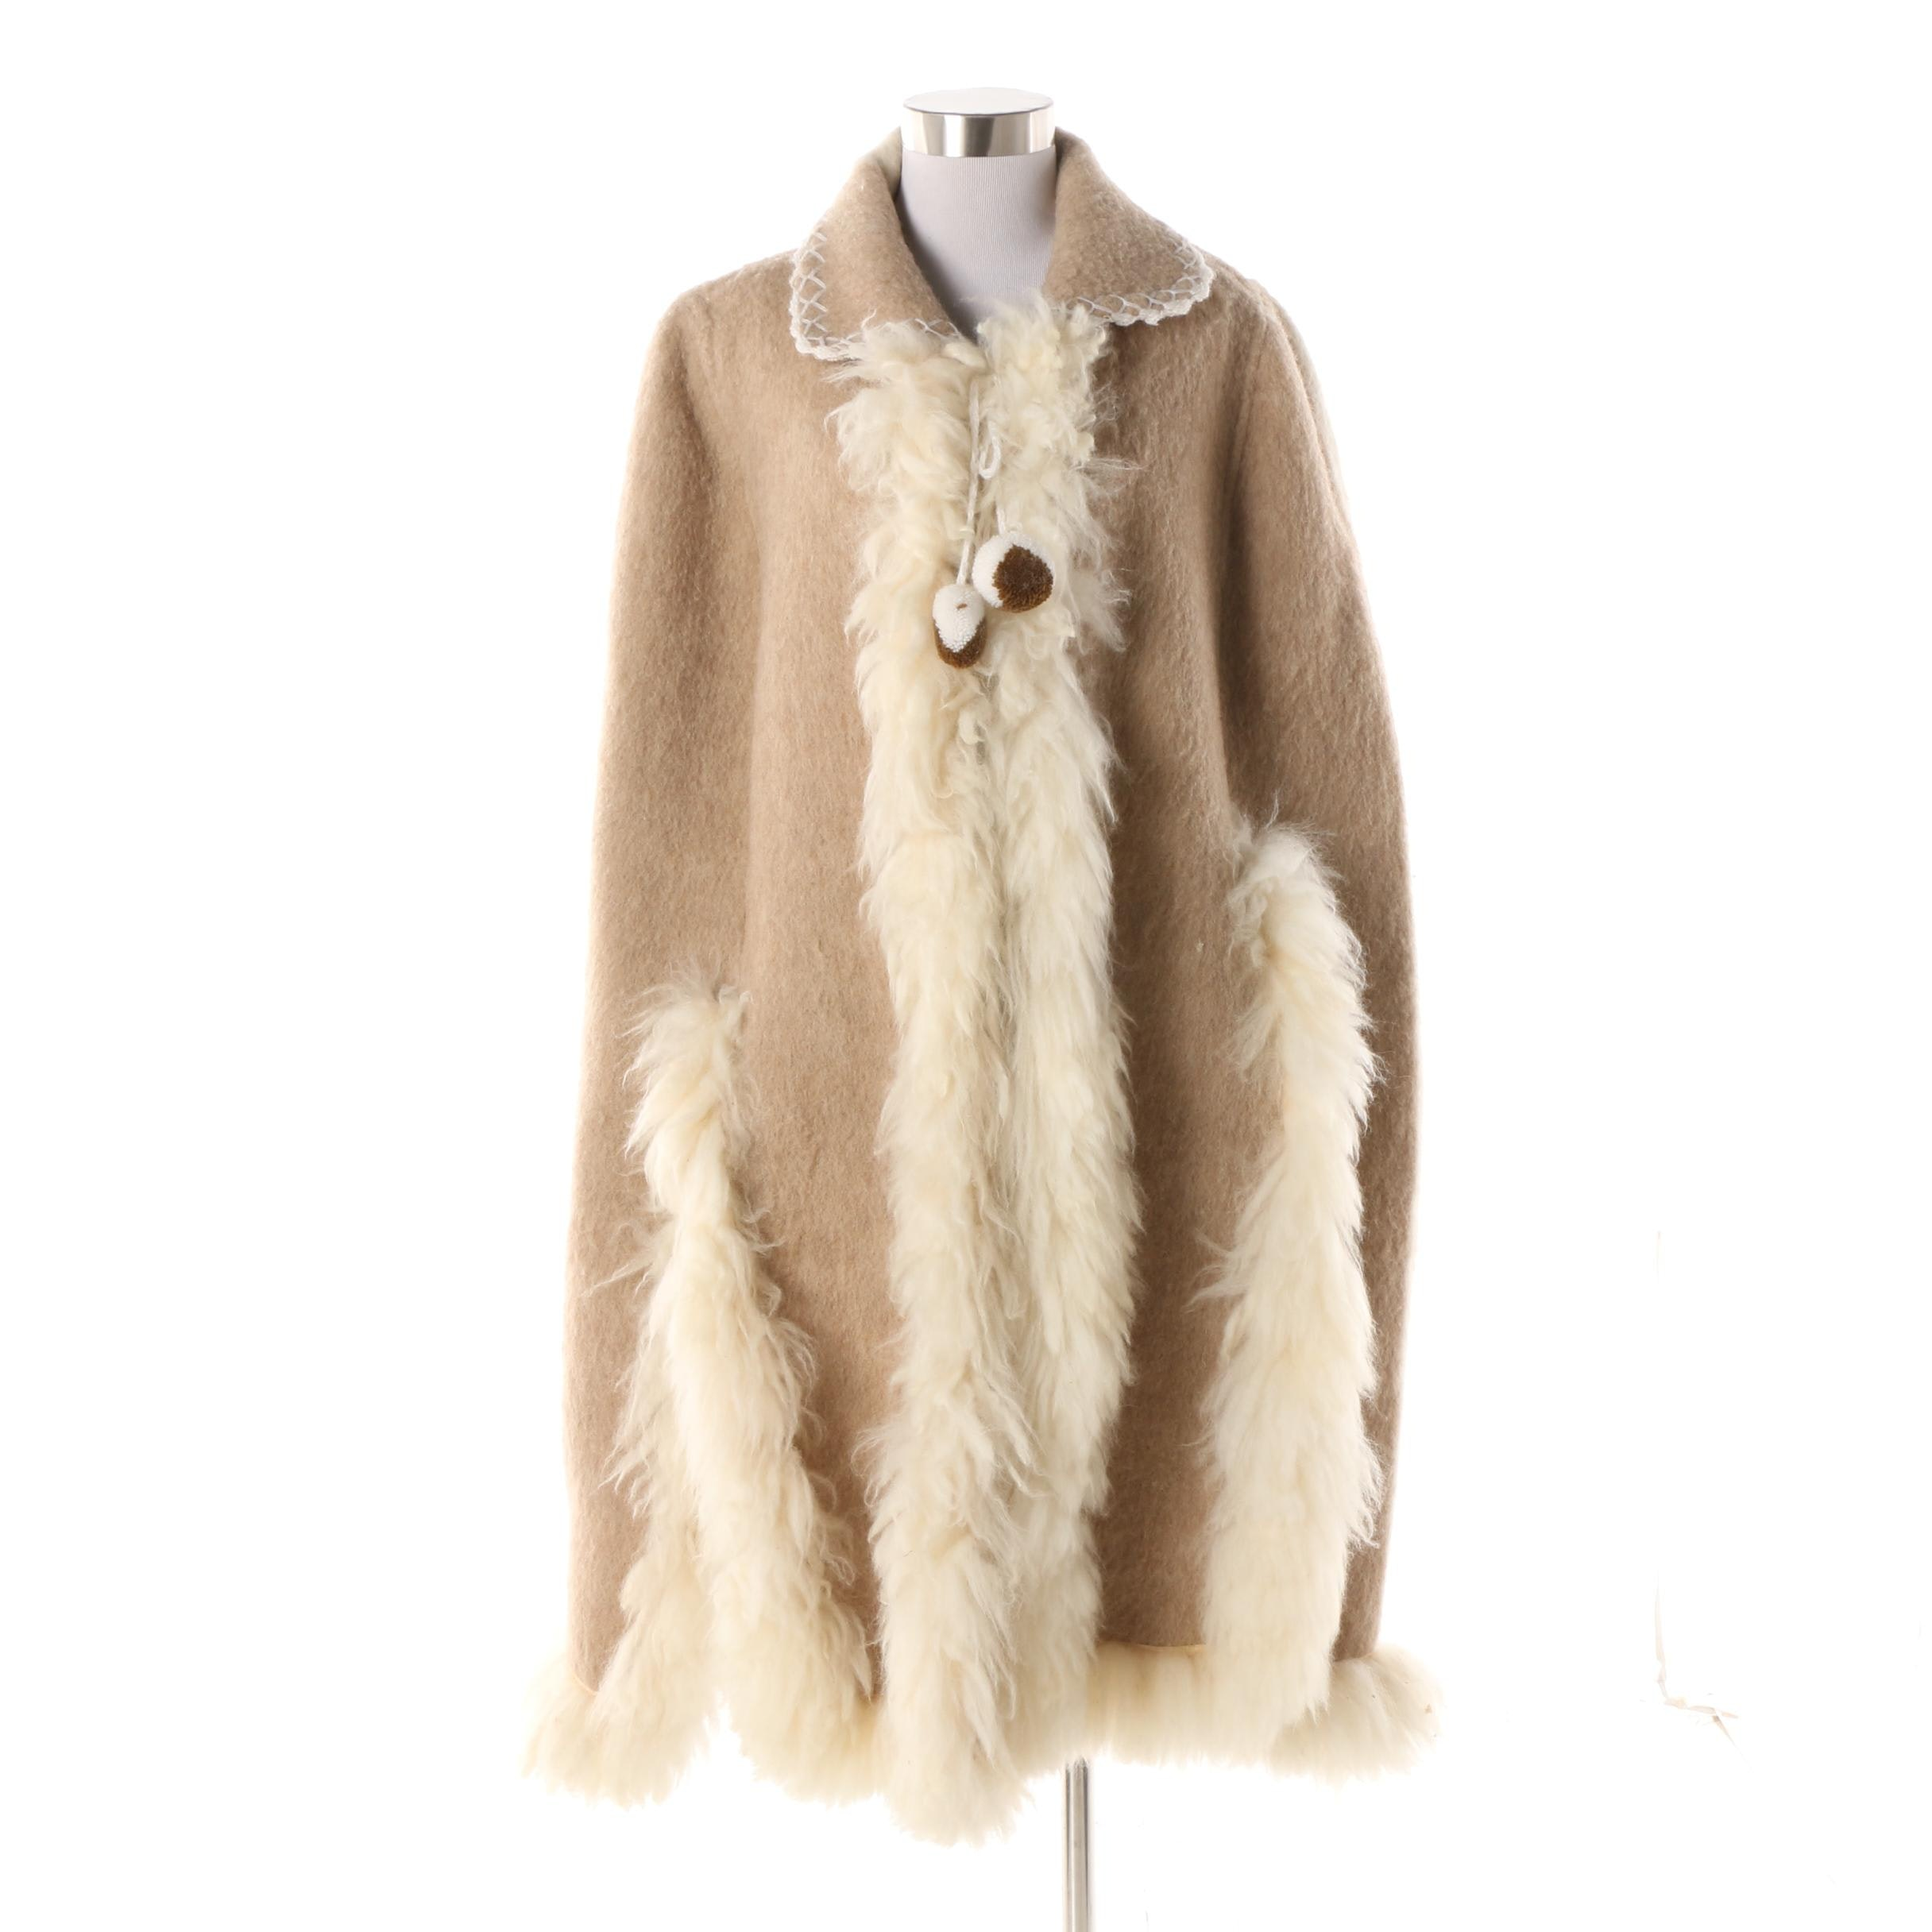 1960s Vintage Cream and Tan Mohair Blend Cape with Shearling Trim